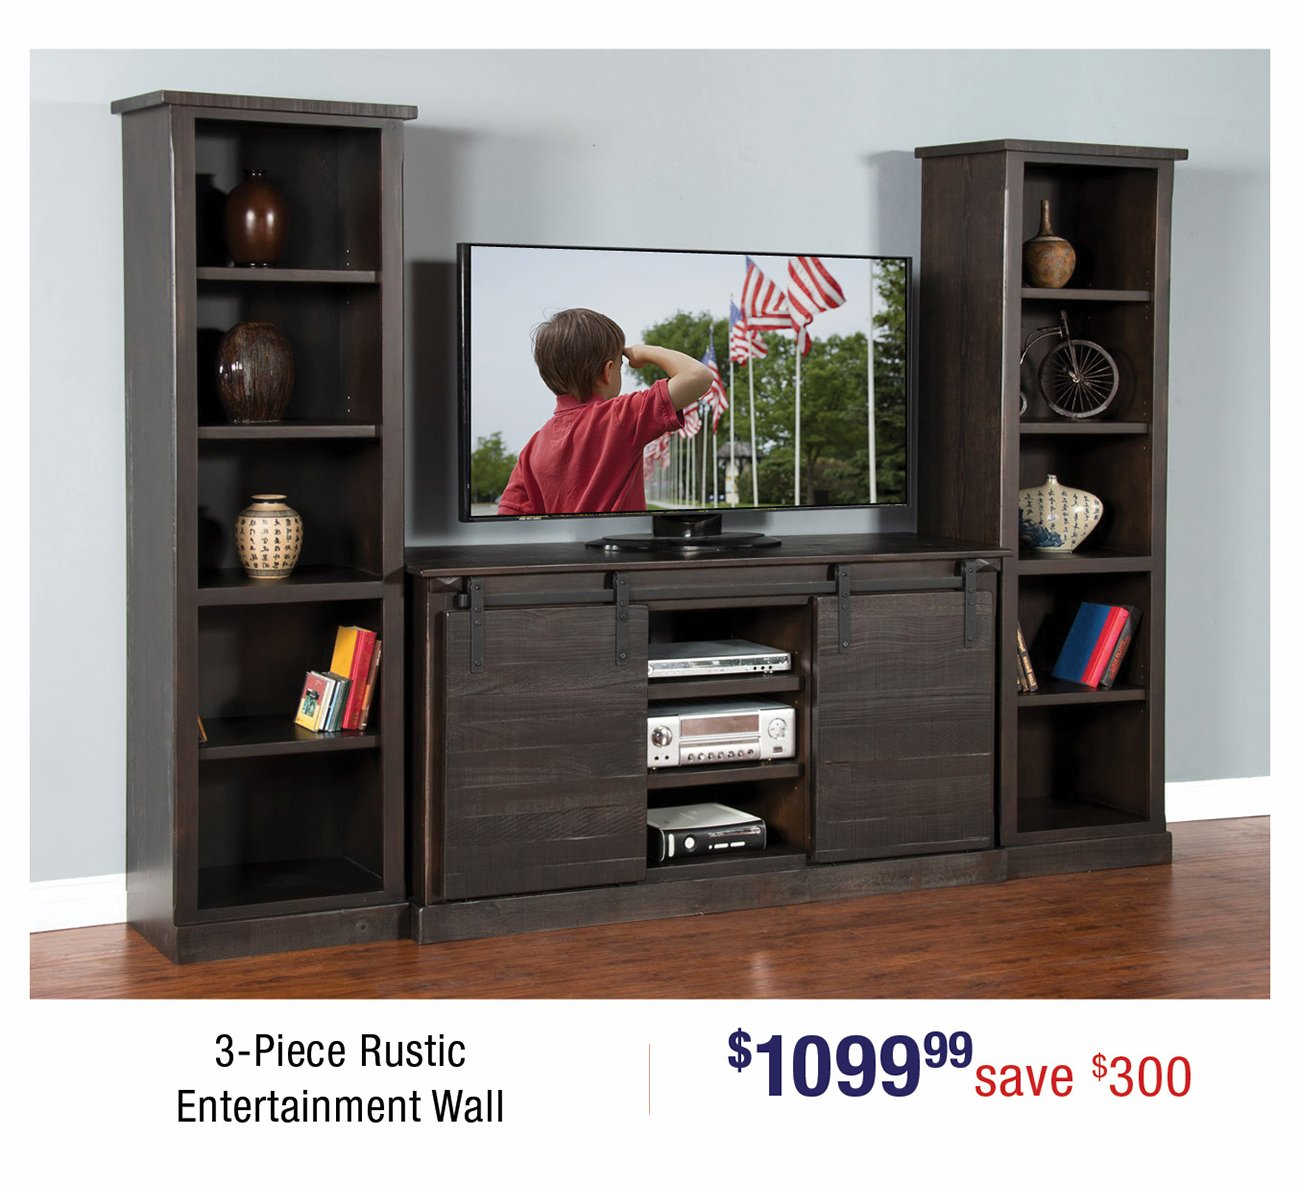 Rustic-entertainment-wall